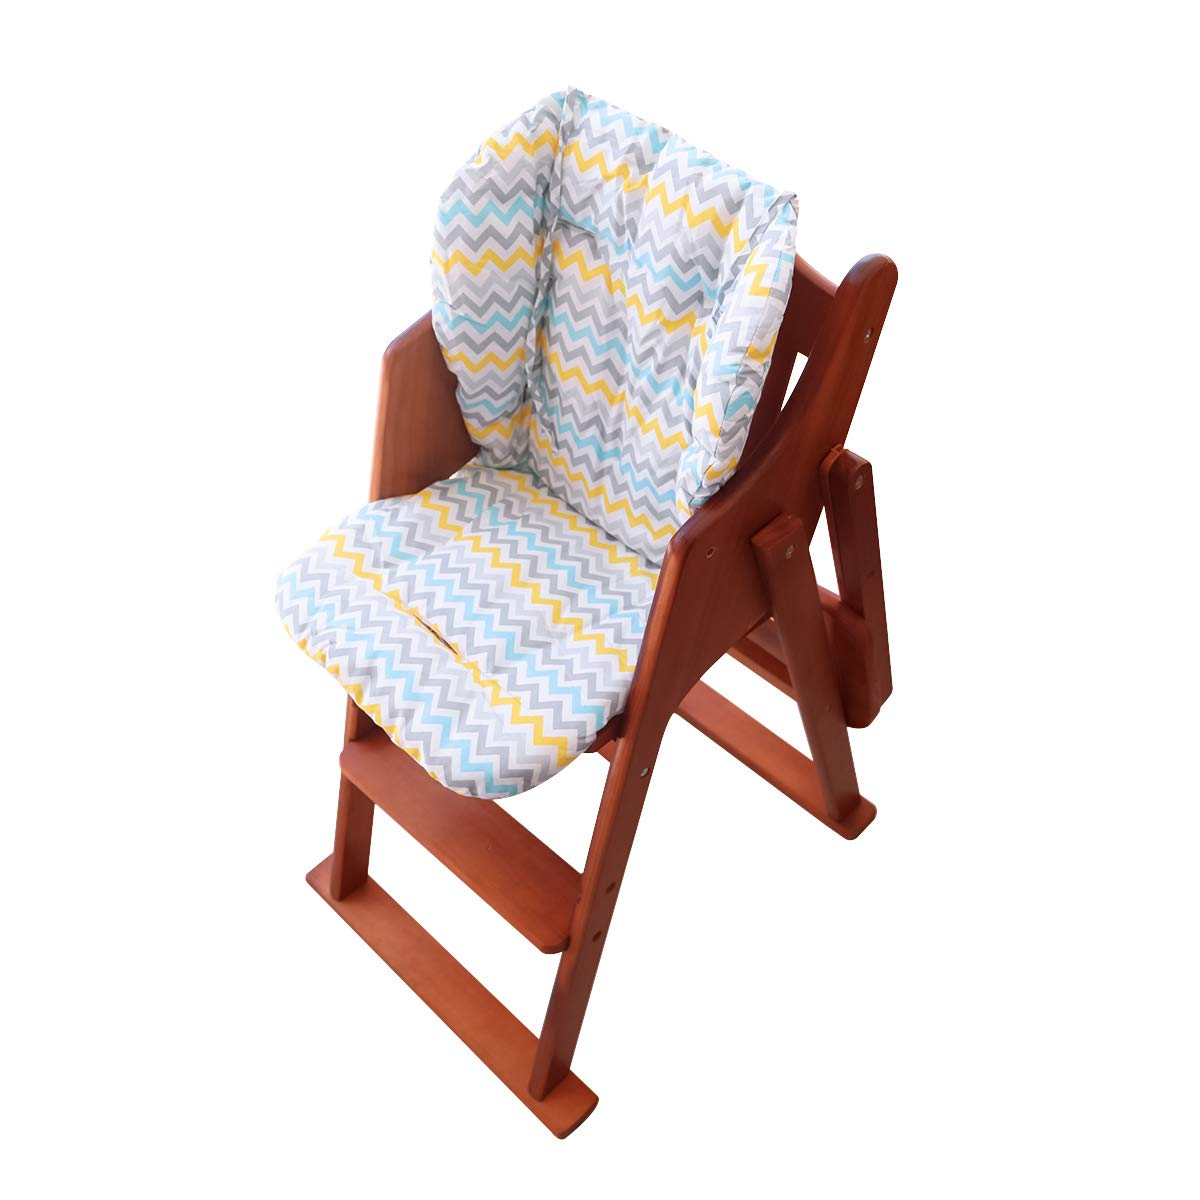 Wavy Stripes Large Thickening Baby High Chair Seat Cushion Liner Mat Pad Cover Breathable Twoworld High Chair Cushion